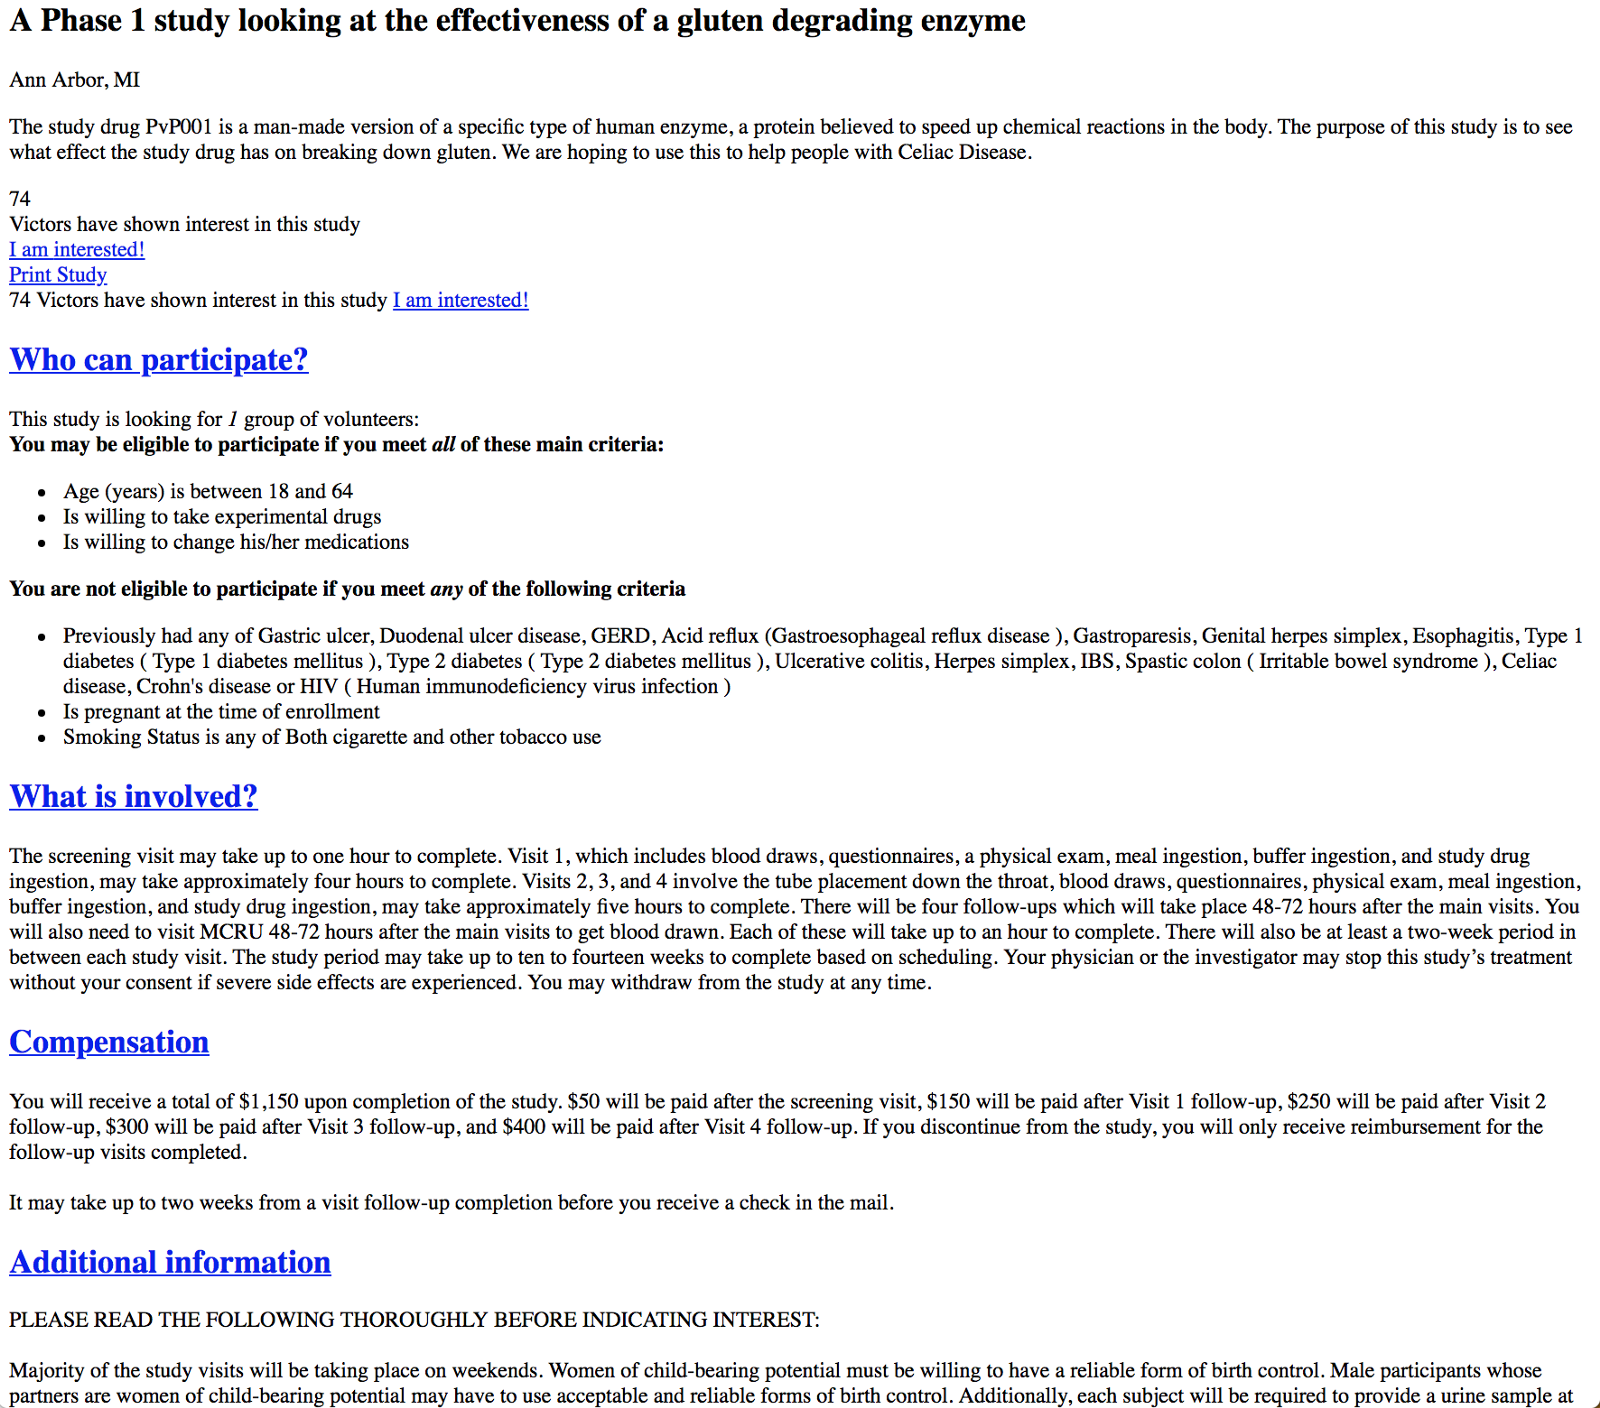 An un-styled study details page. A typical study page on UMHealthResearch contains a lot of text